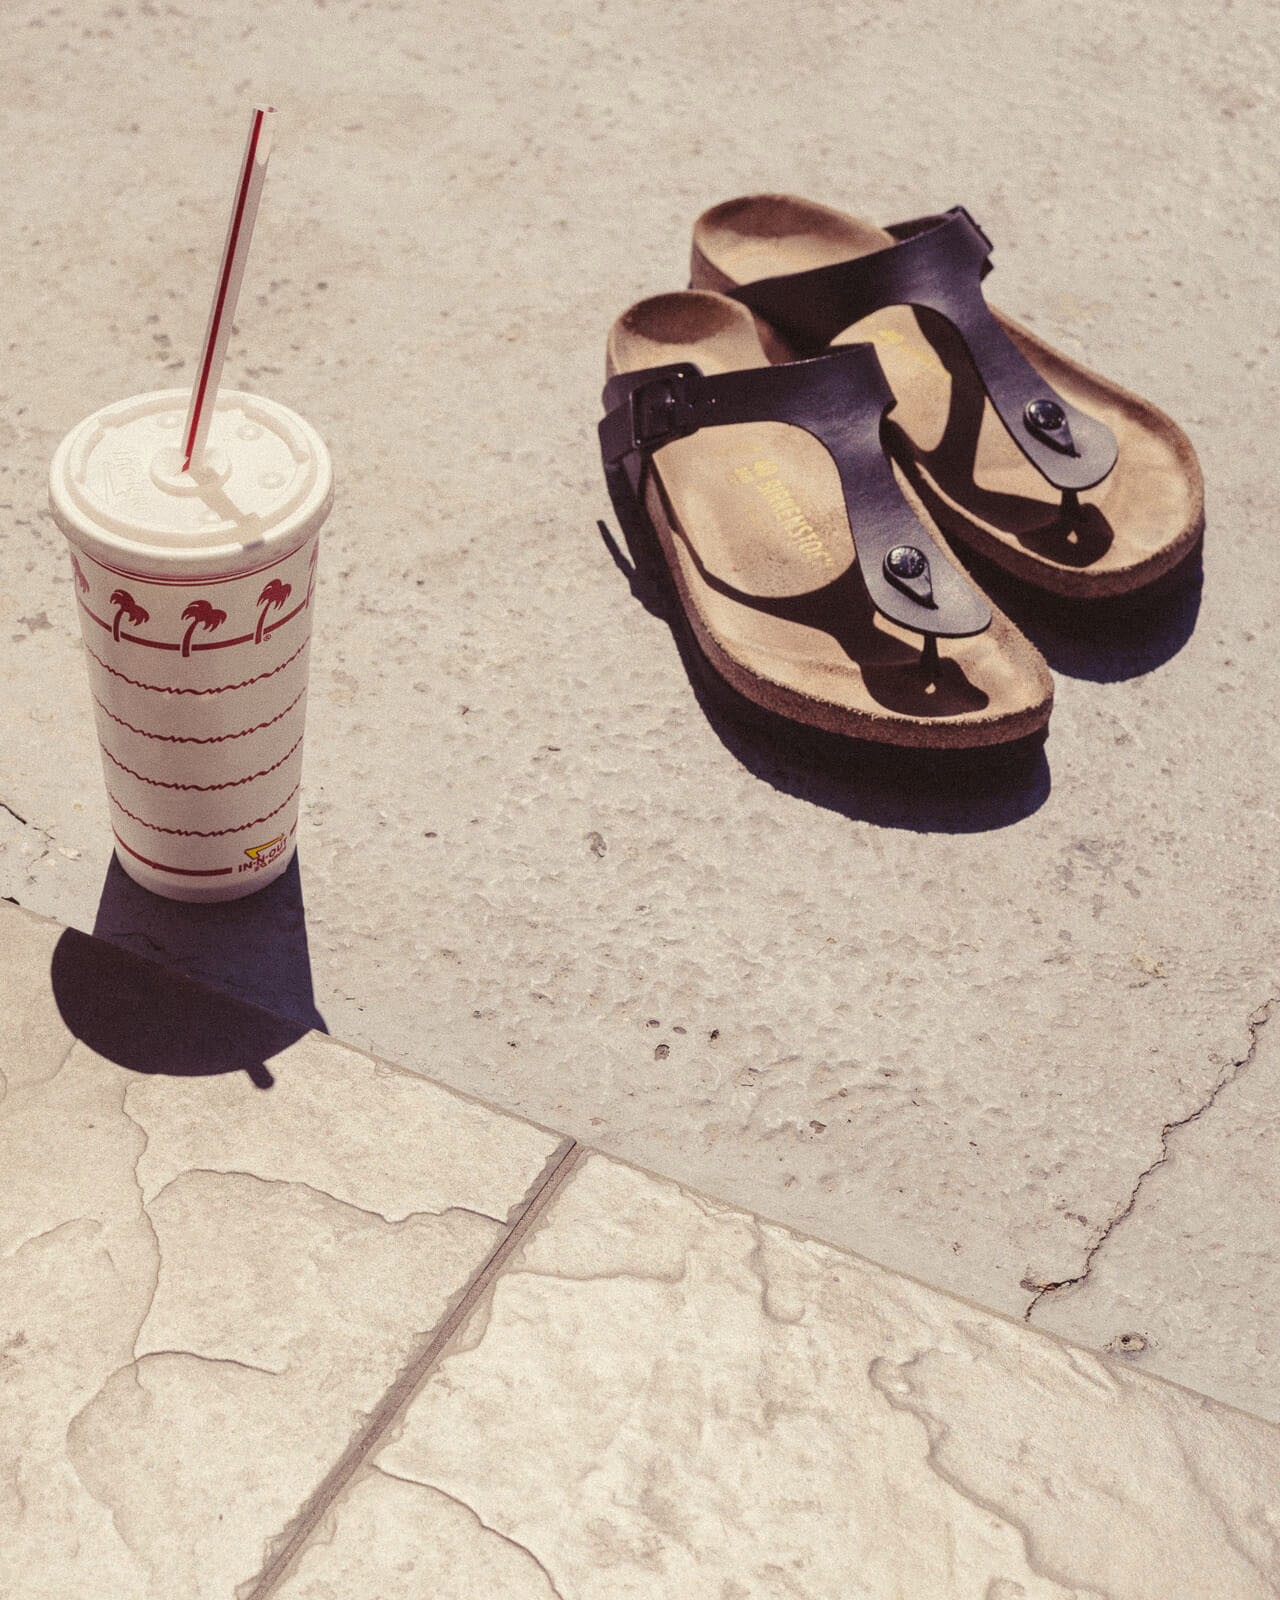 Sandals and in-and-out  by lifestyle photographer Tim Cole